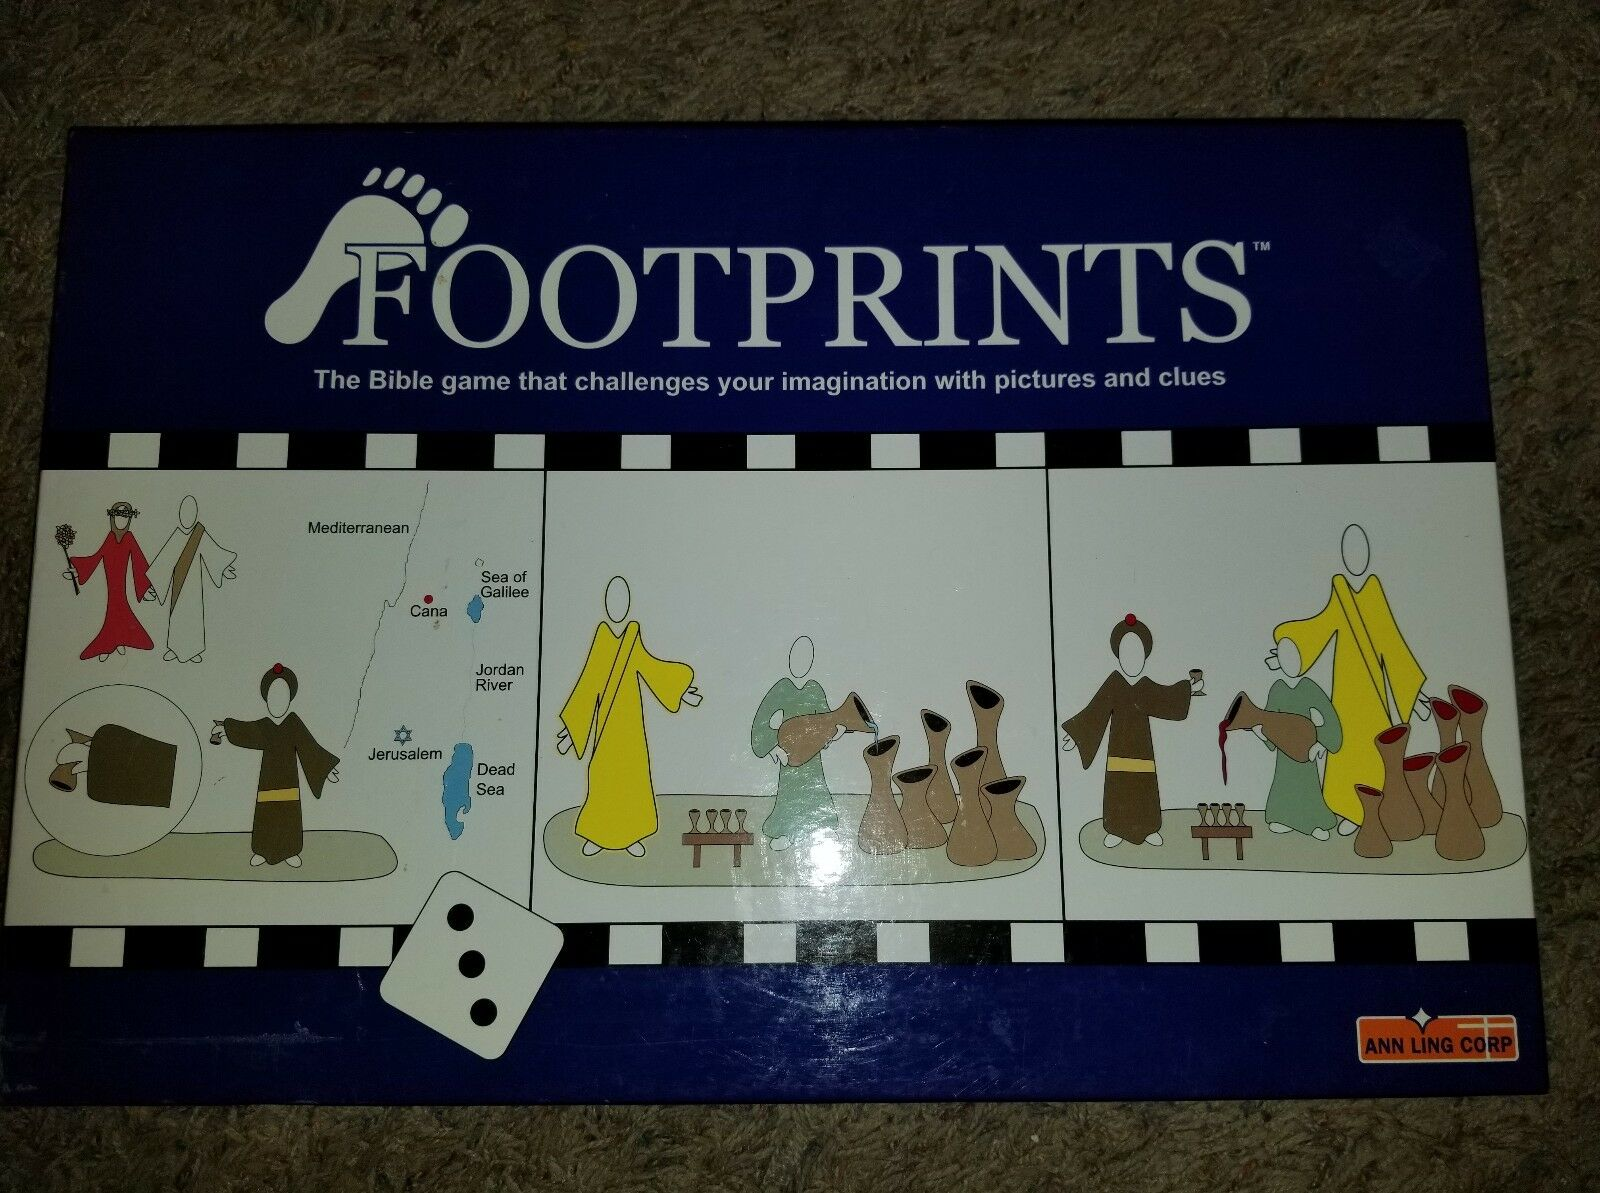 Footprints, The  bible gioco that chtuttienges your imagination with pictures clues  fino al 50% di sconto